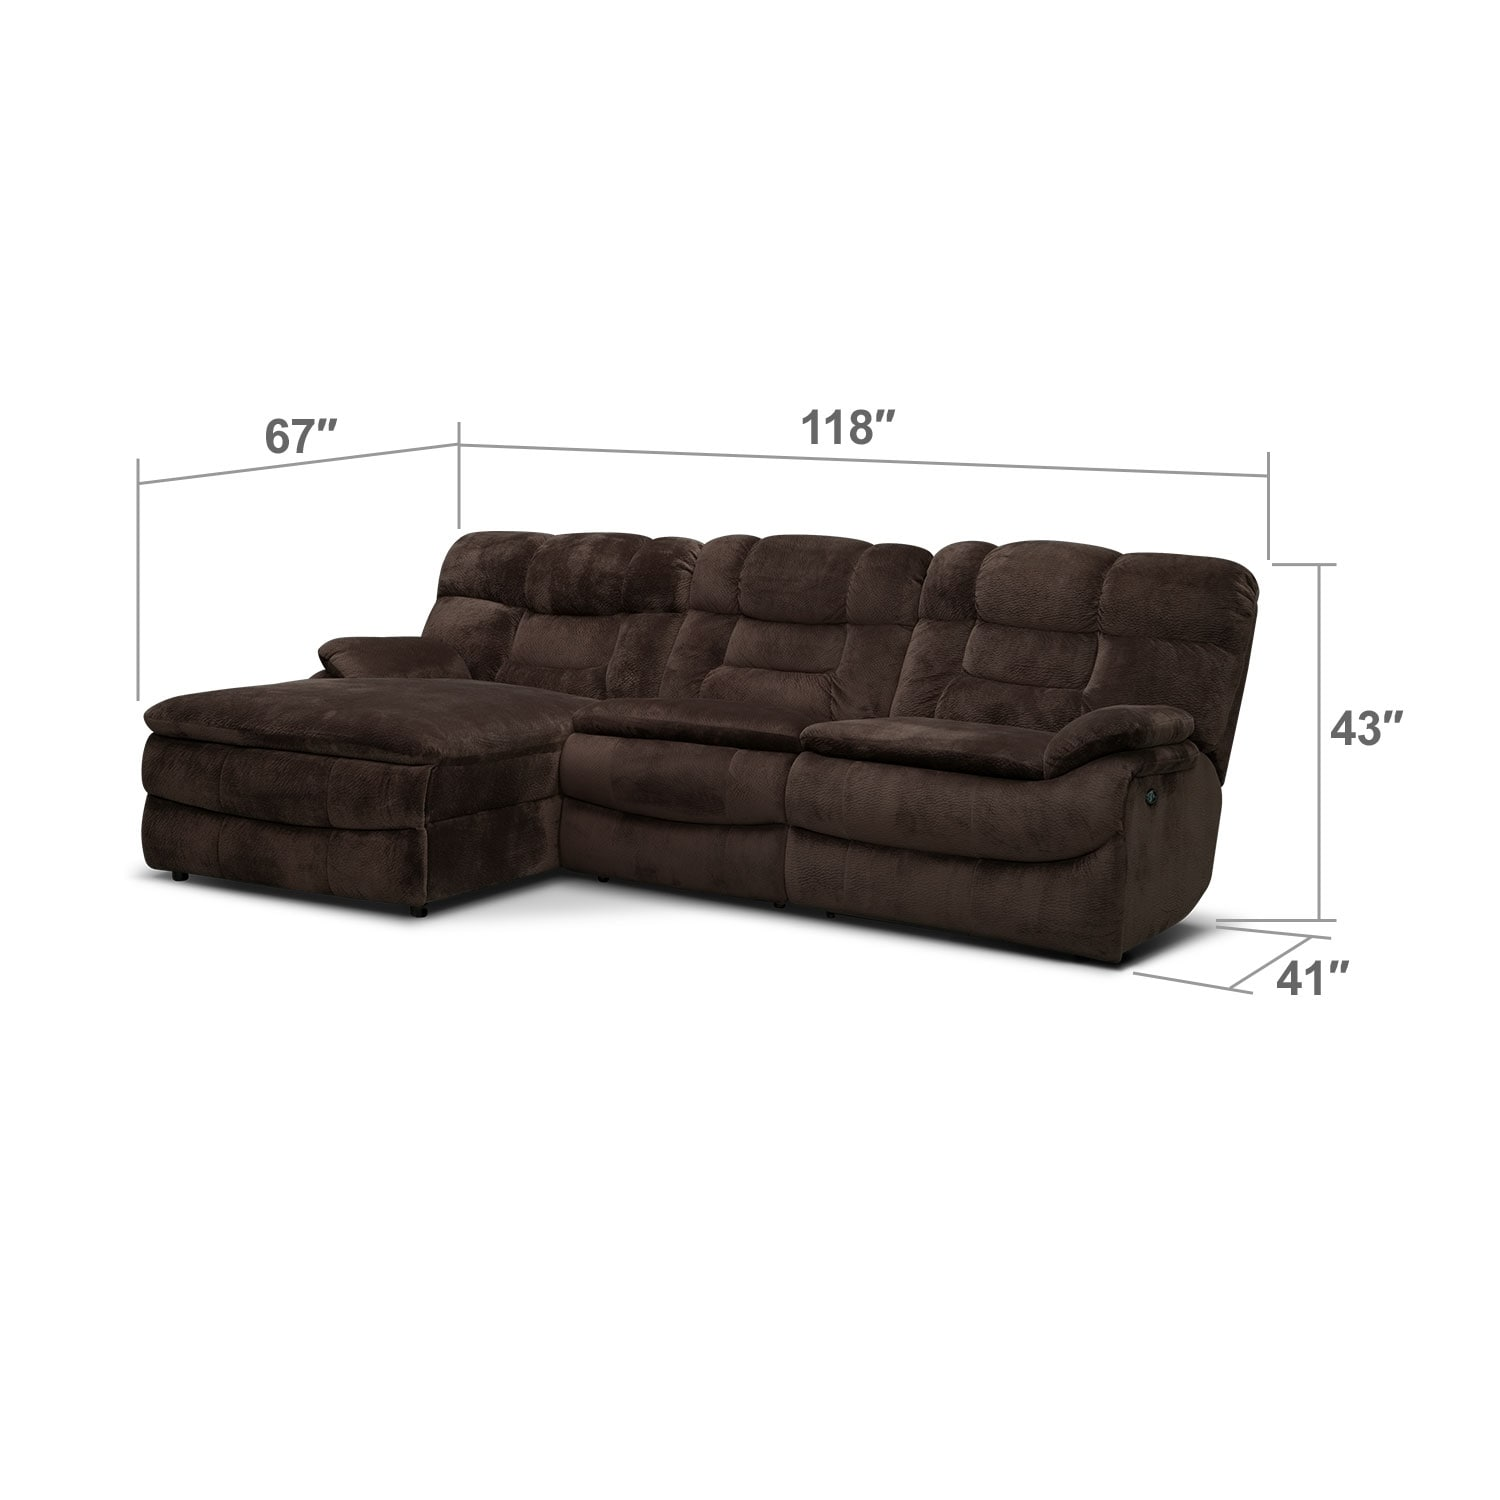 Living Room Furniture - Big Softie 3-Piece Power Reclining Sectional with Left-Facing Chaise - Chocolate